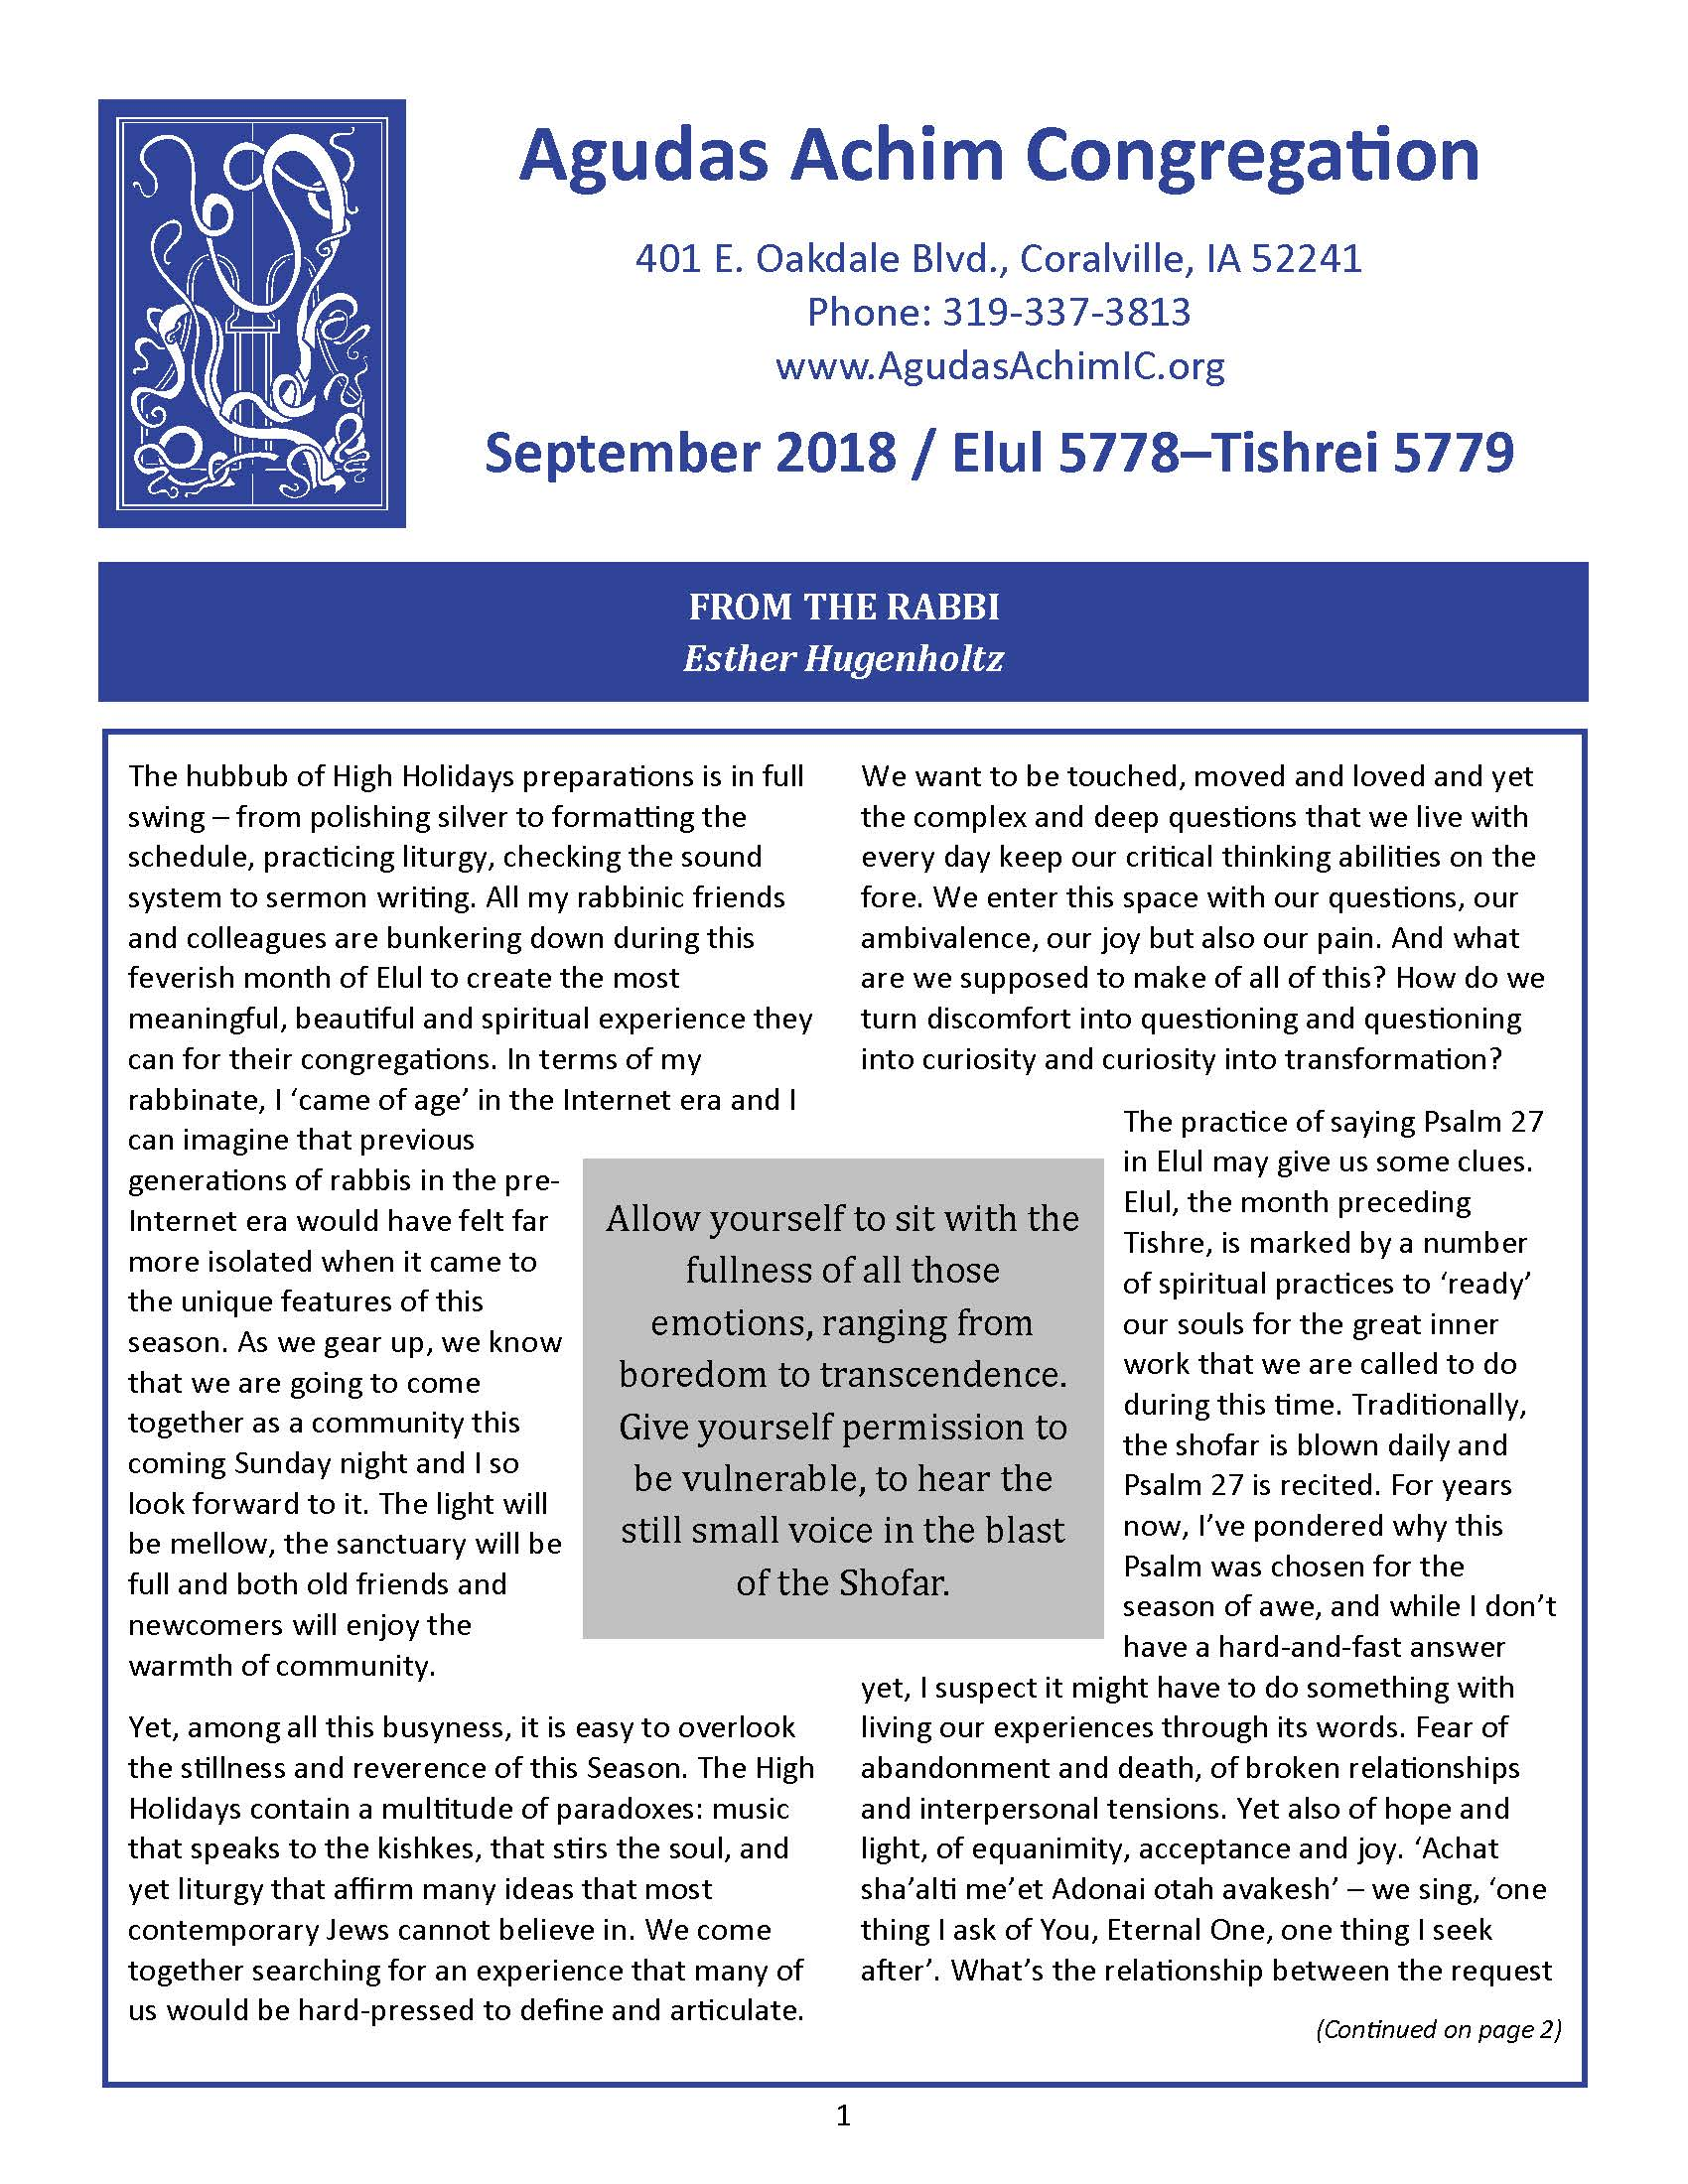 September 2018 Bulletin Final_Page_01